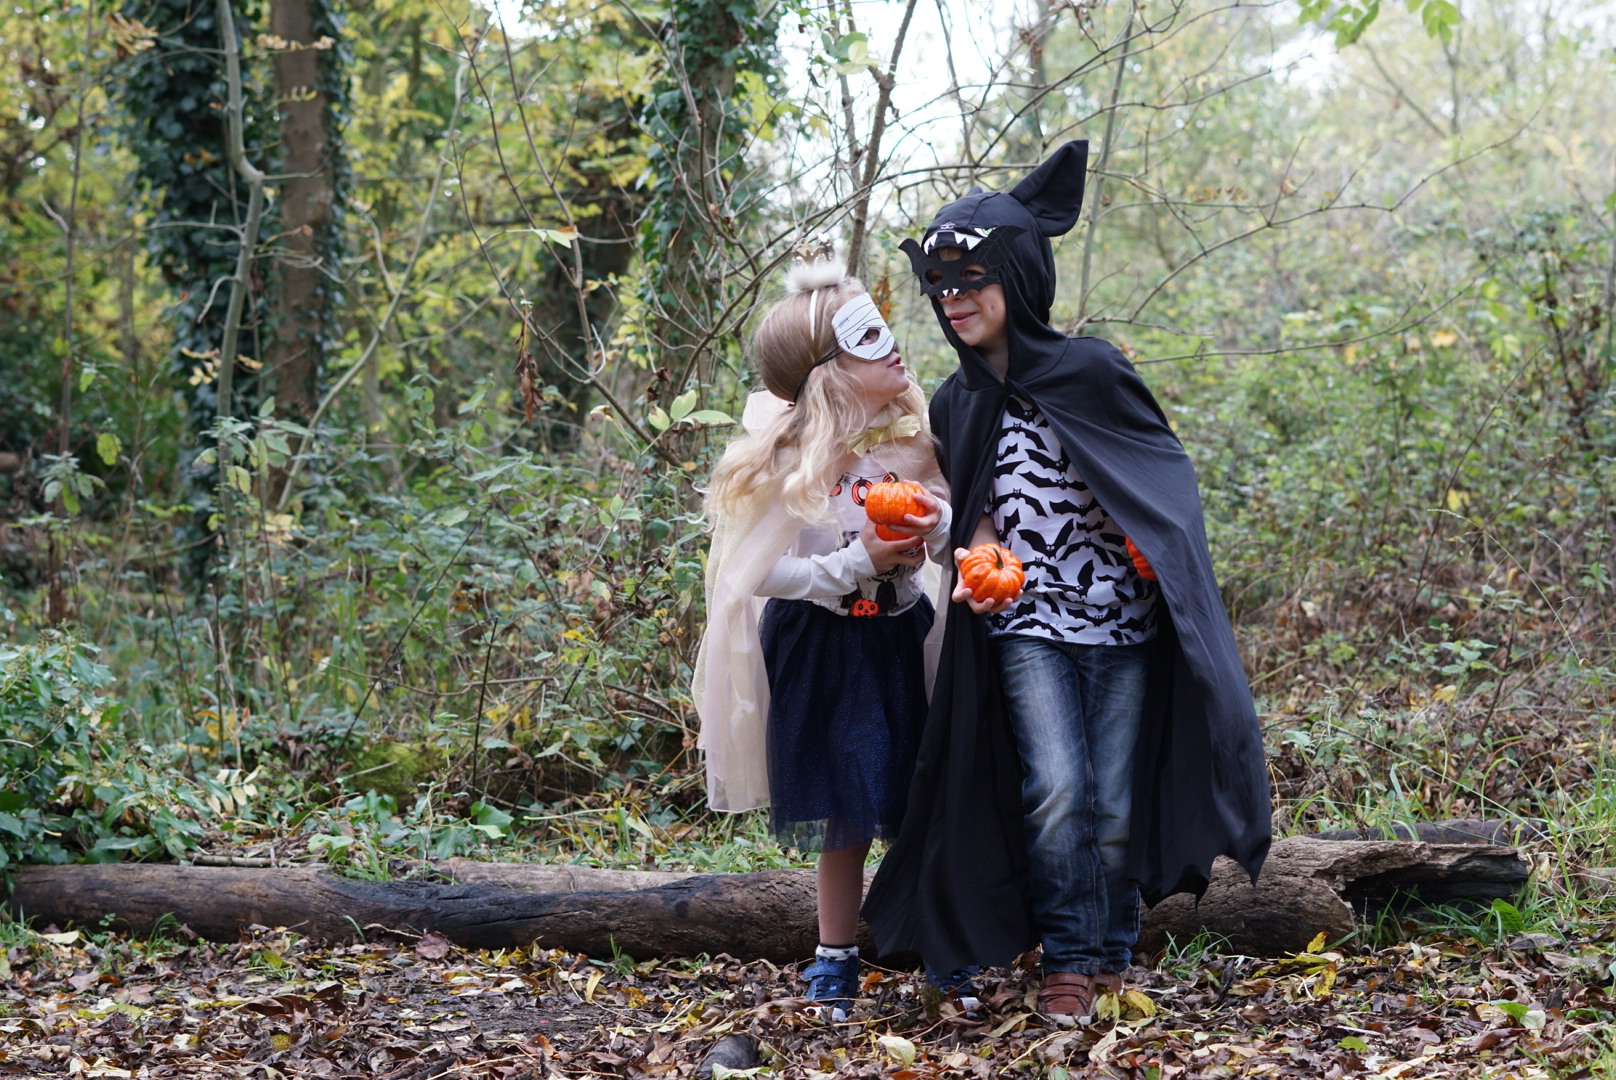 Autumn childrenswear is just incredibly cute and fun #fashion